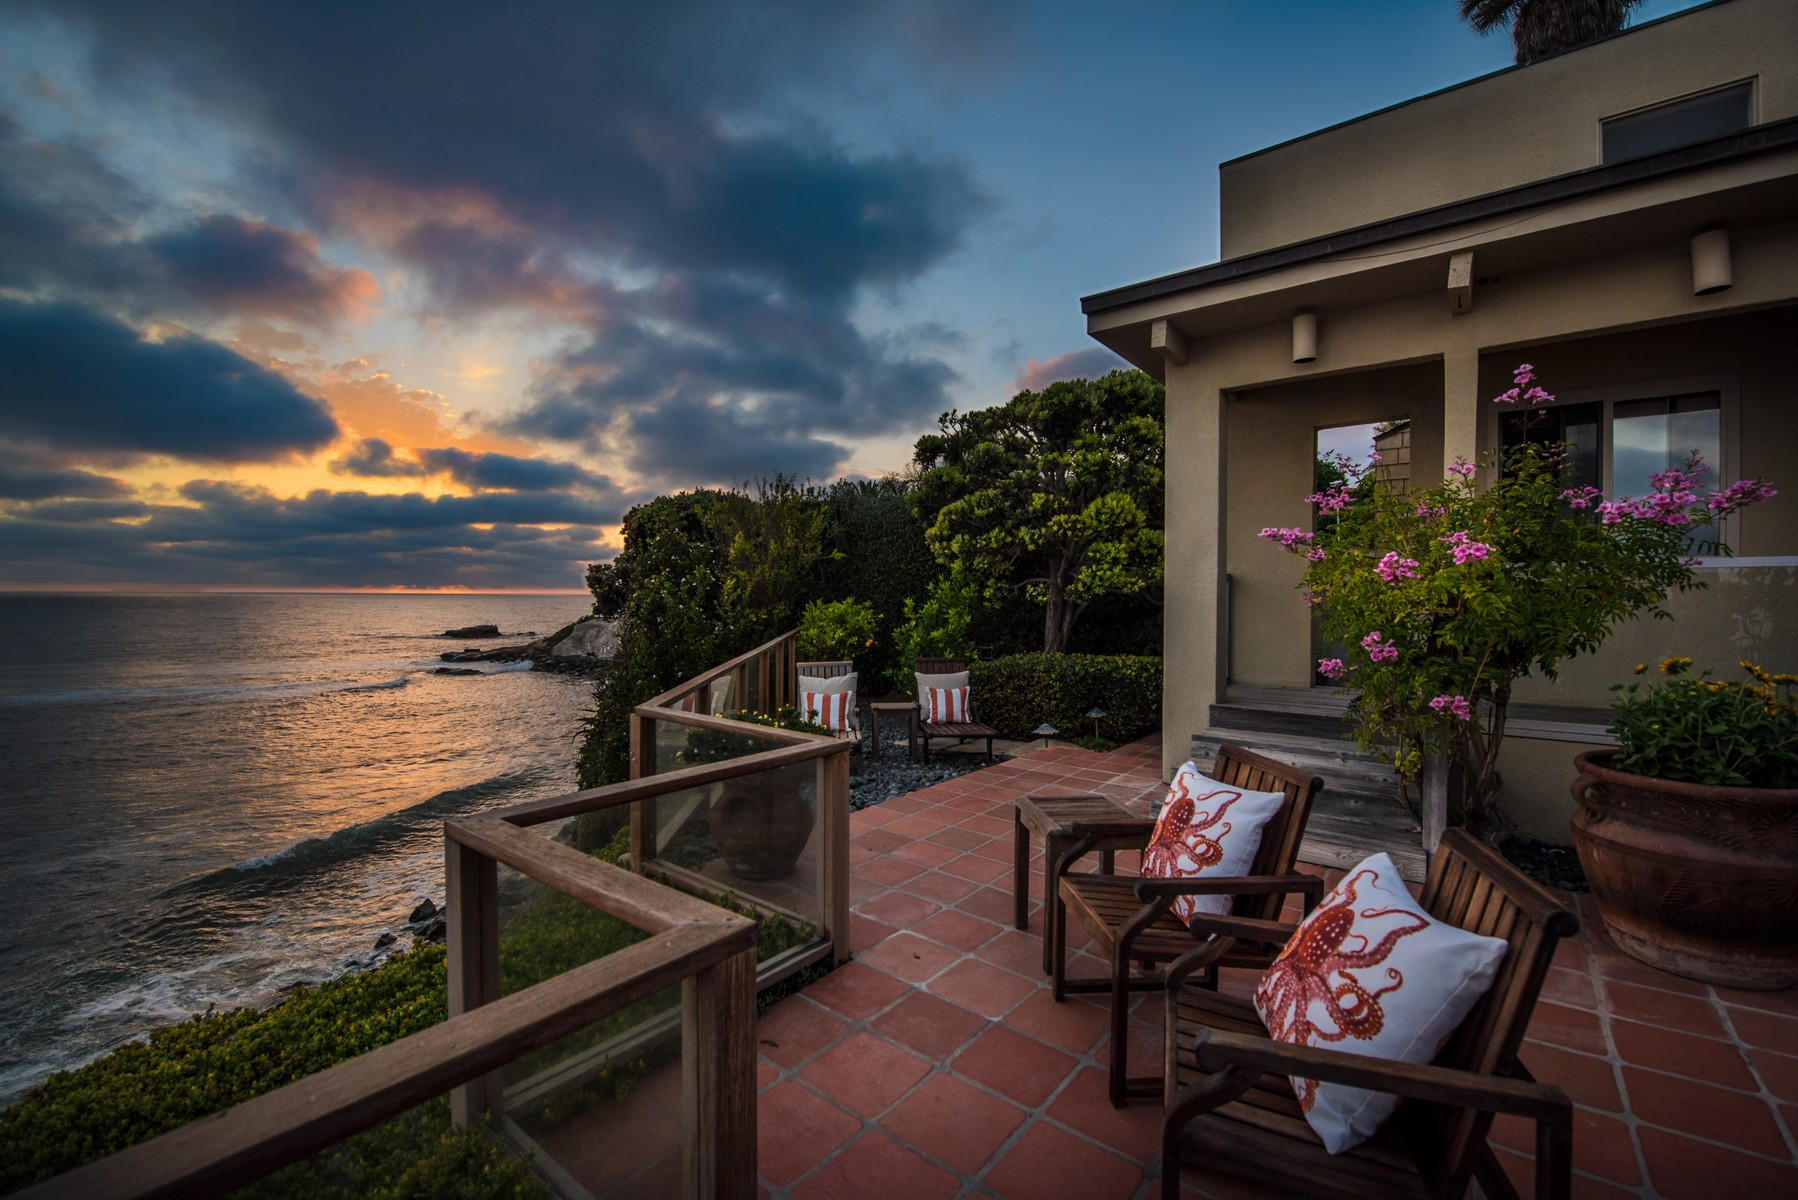 Additional photo for property listing at 310 Forward Street  La Jolla, California 92037 United States